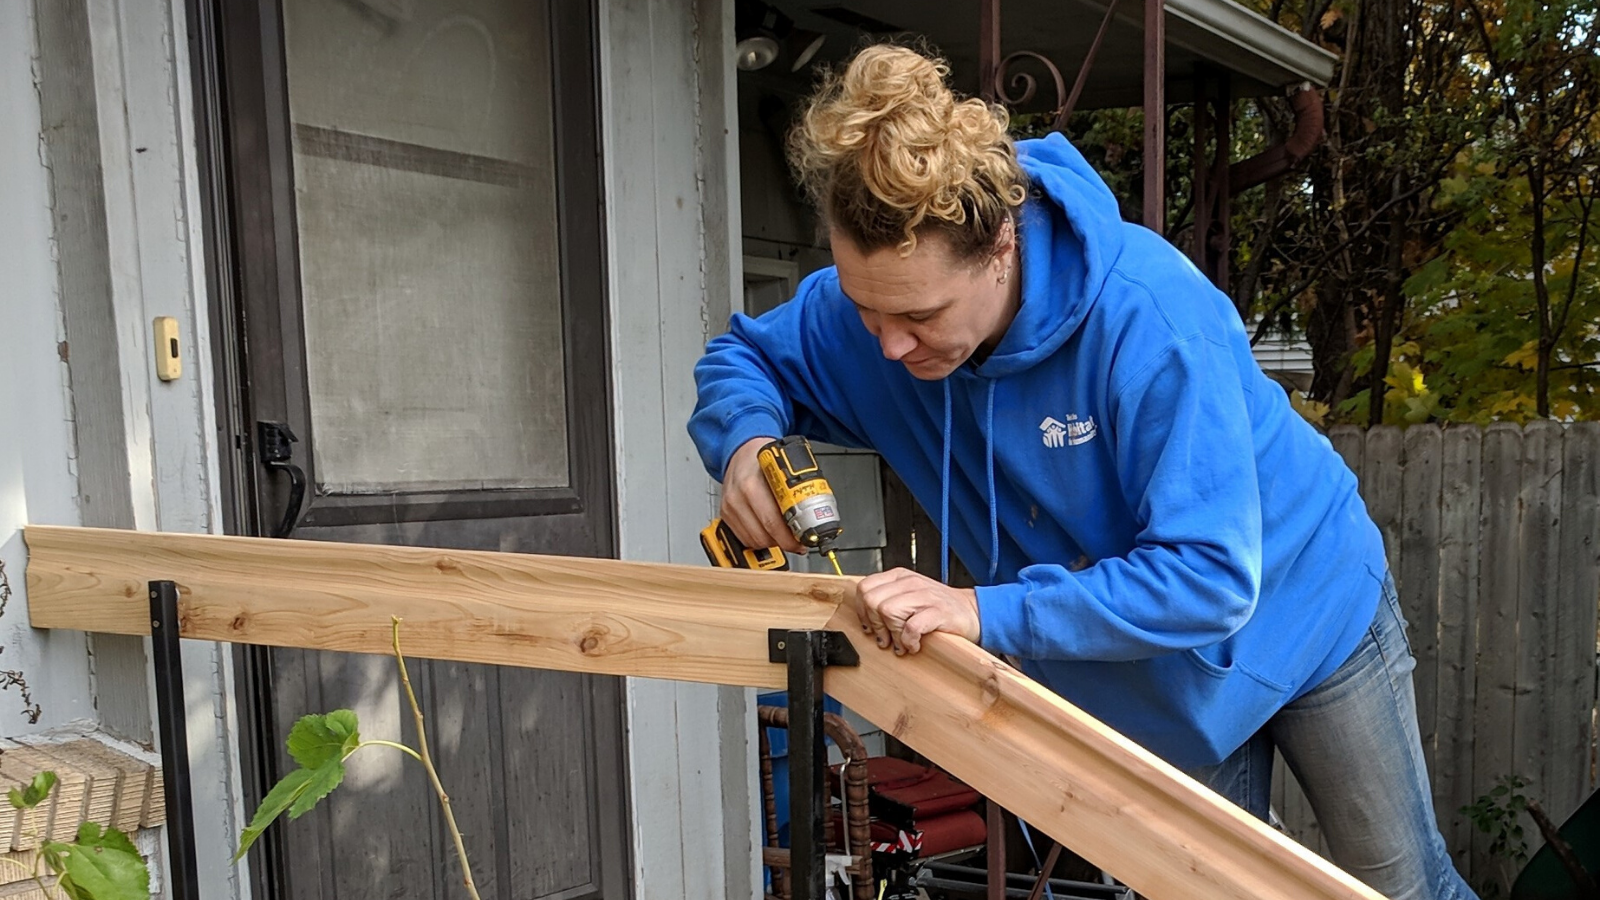 Project supervisor Ashley Realbanas installing a railing at a home